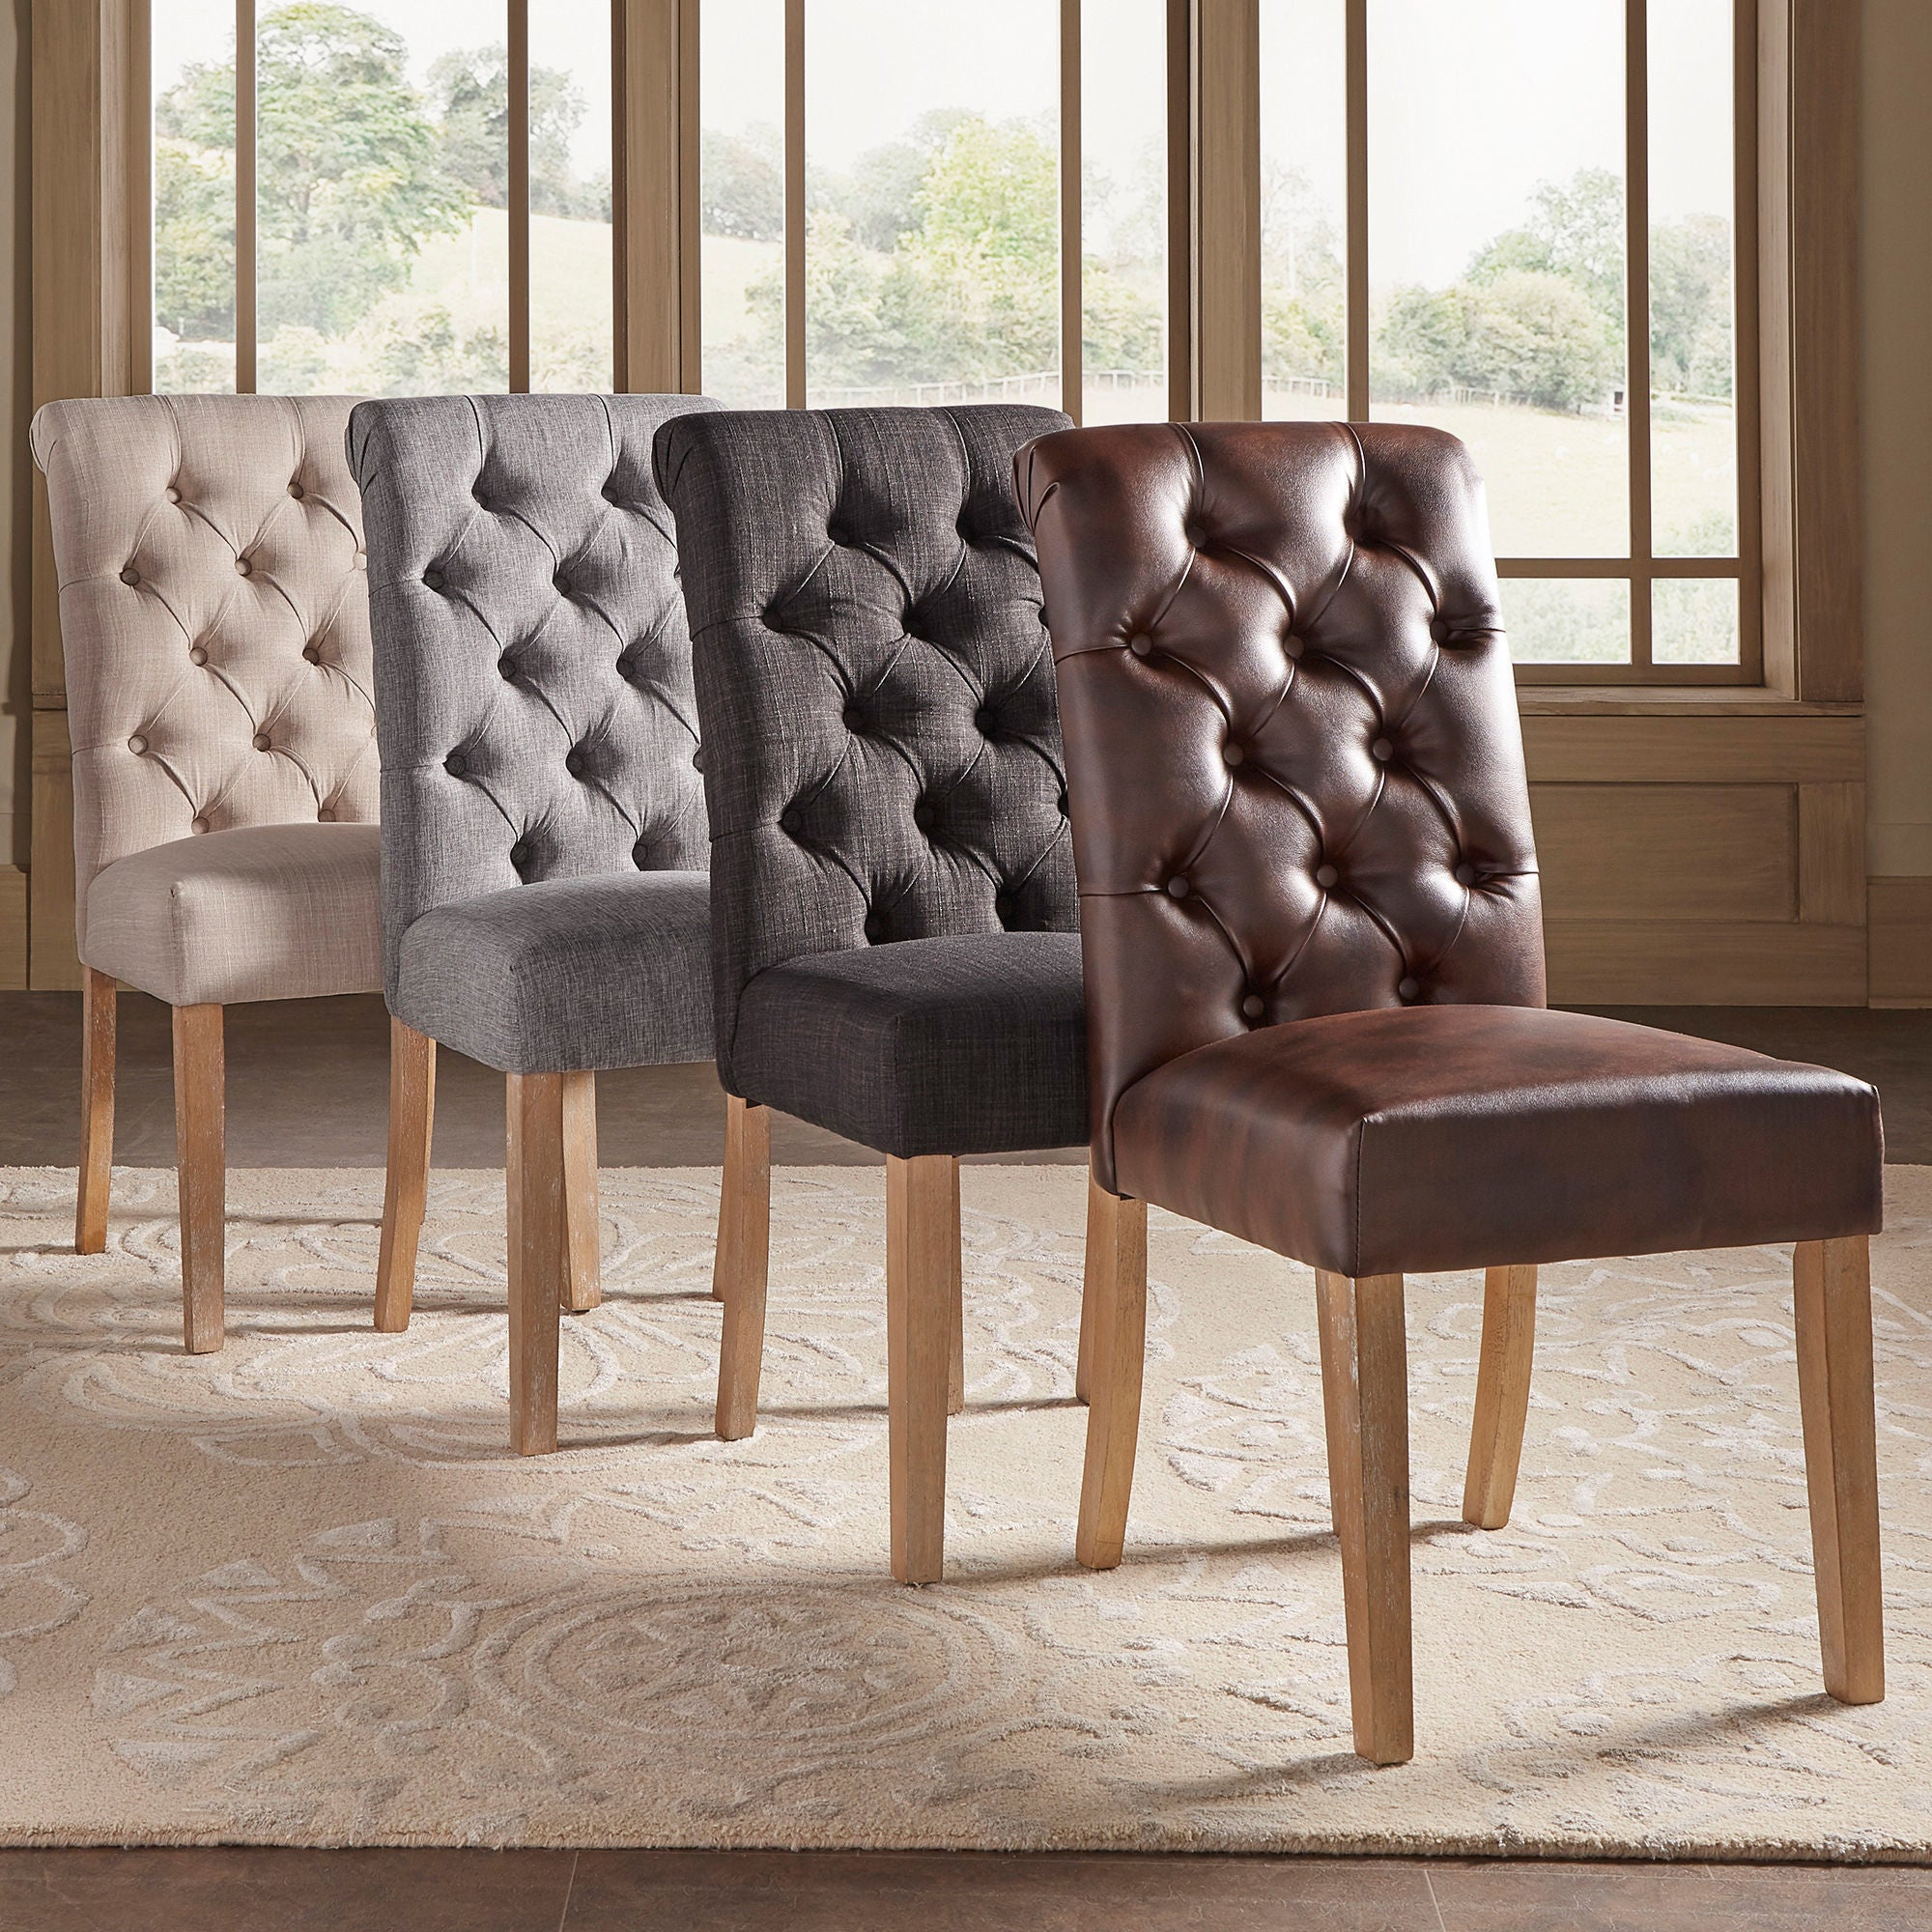 Benchwright Premium Tufted Rolled Back Parsons Chairs (Set of 2) by iNSPIRE  Q Artisan - Free Shipping Today - Overstock.com - 17126136